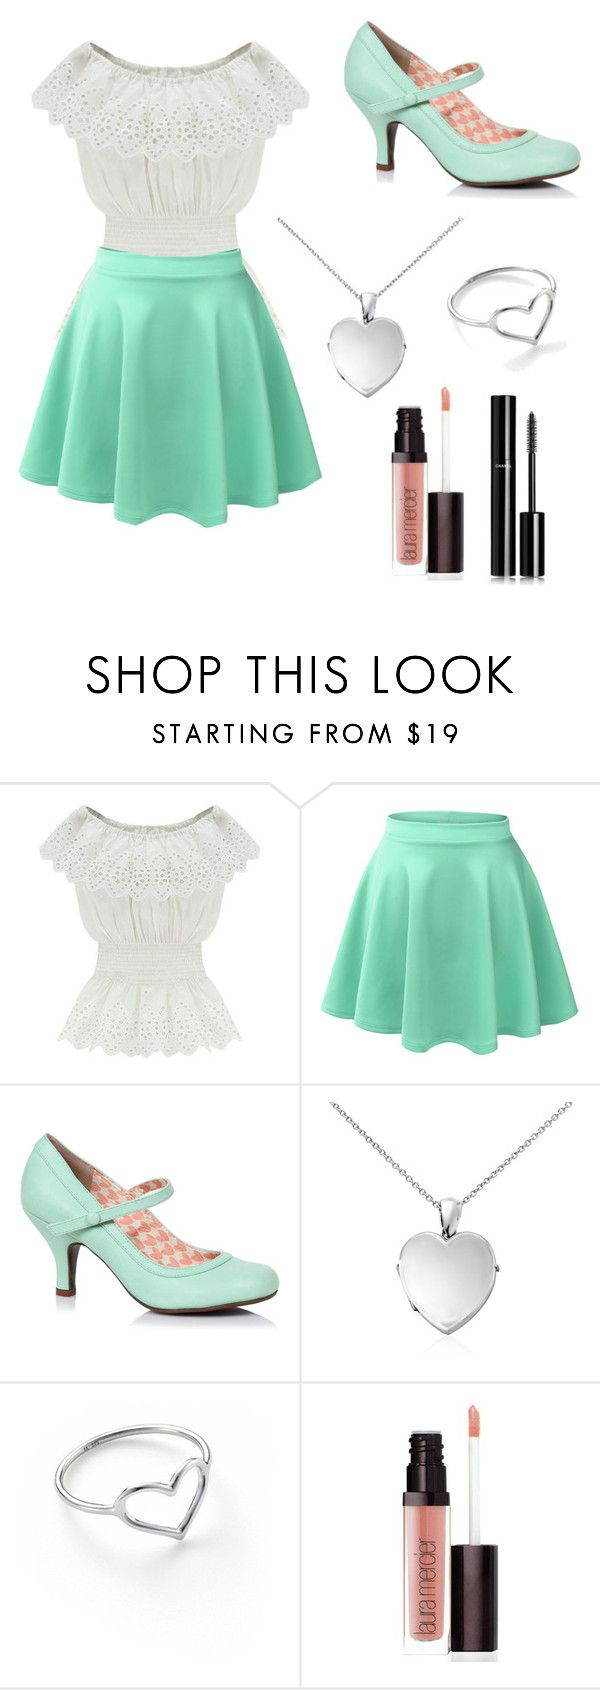 """Teal Sweetheart"" by pheobie-tonkin-rocks ❤ liked on Polyvore featuring WithChic, LE3NO, Blue Nile, Jordan Askill, Laura Mercier and Chanel"